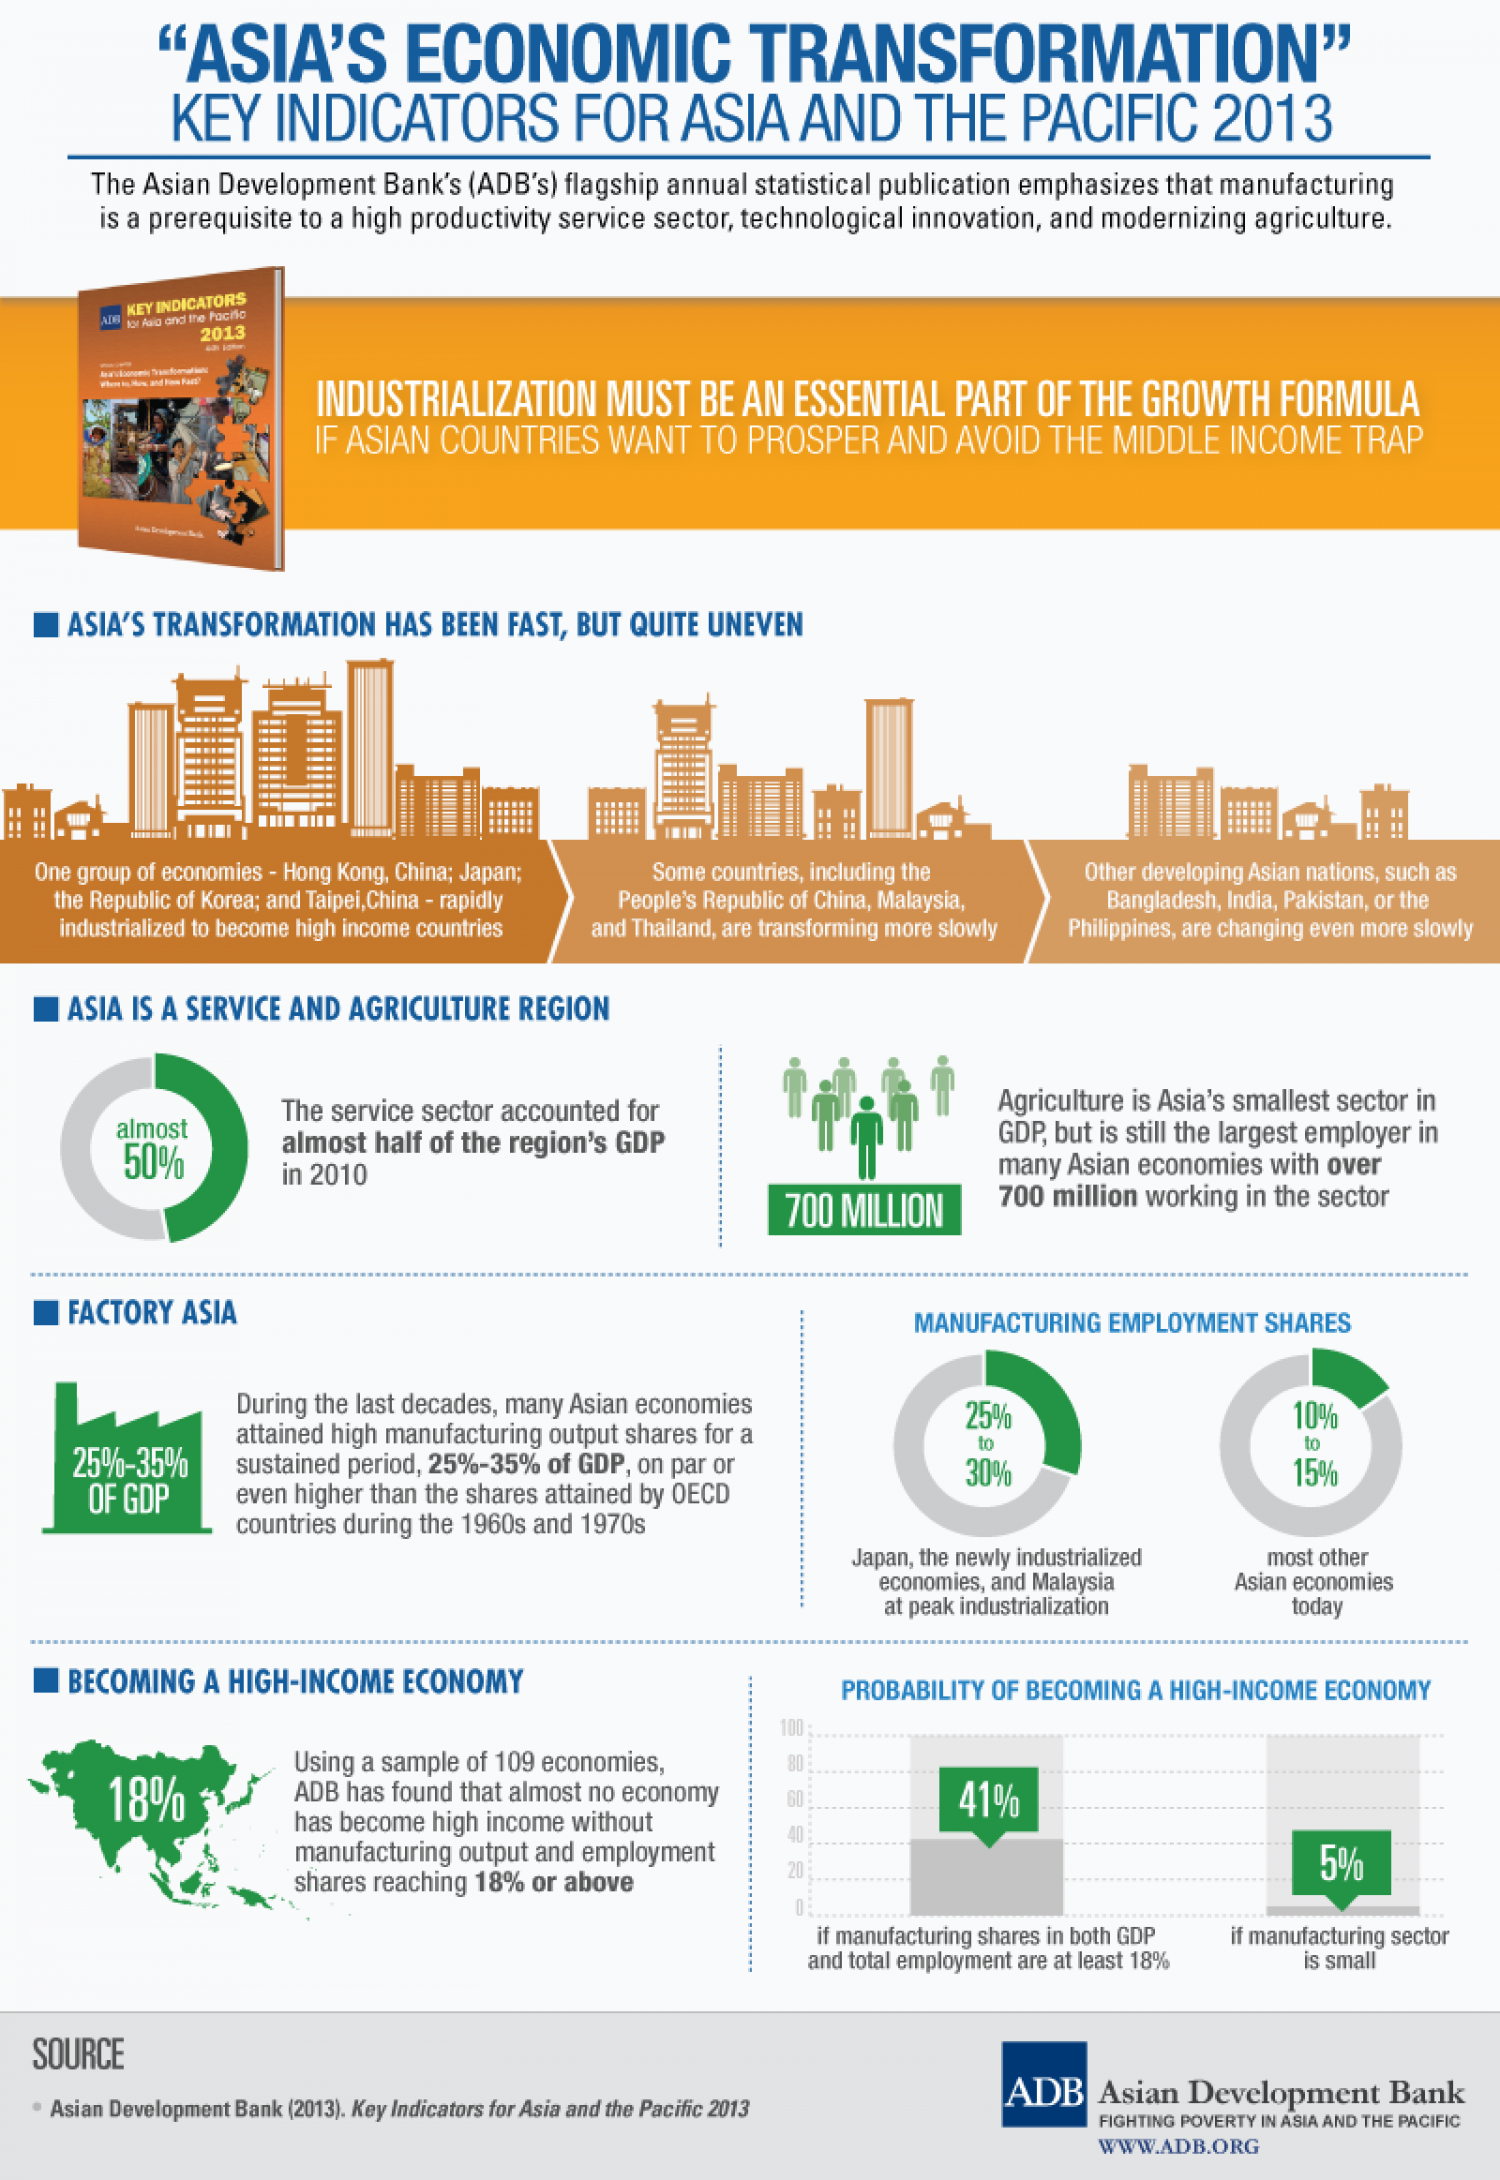 """Asia's Economic Transformation"" - Key Indicators for Asia and the Pacific 2013 Infographic"